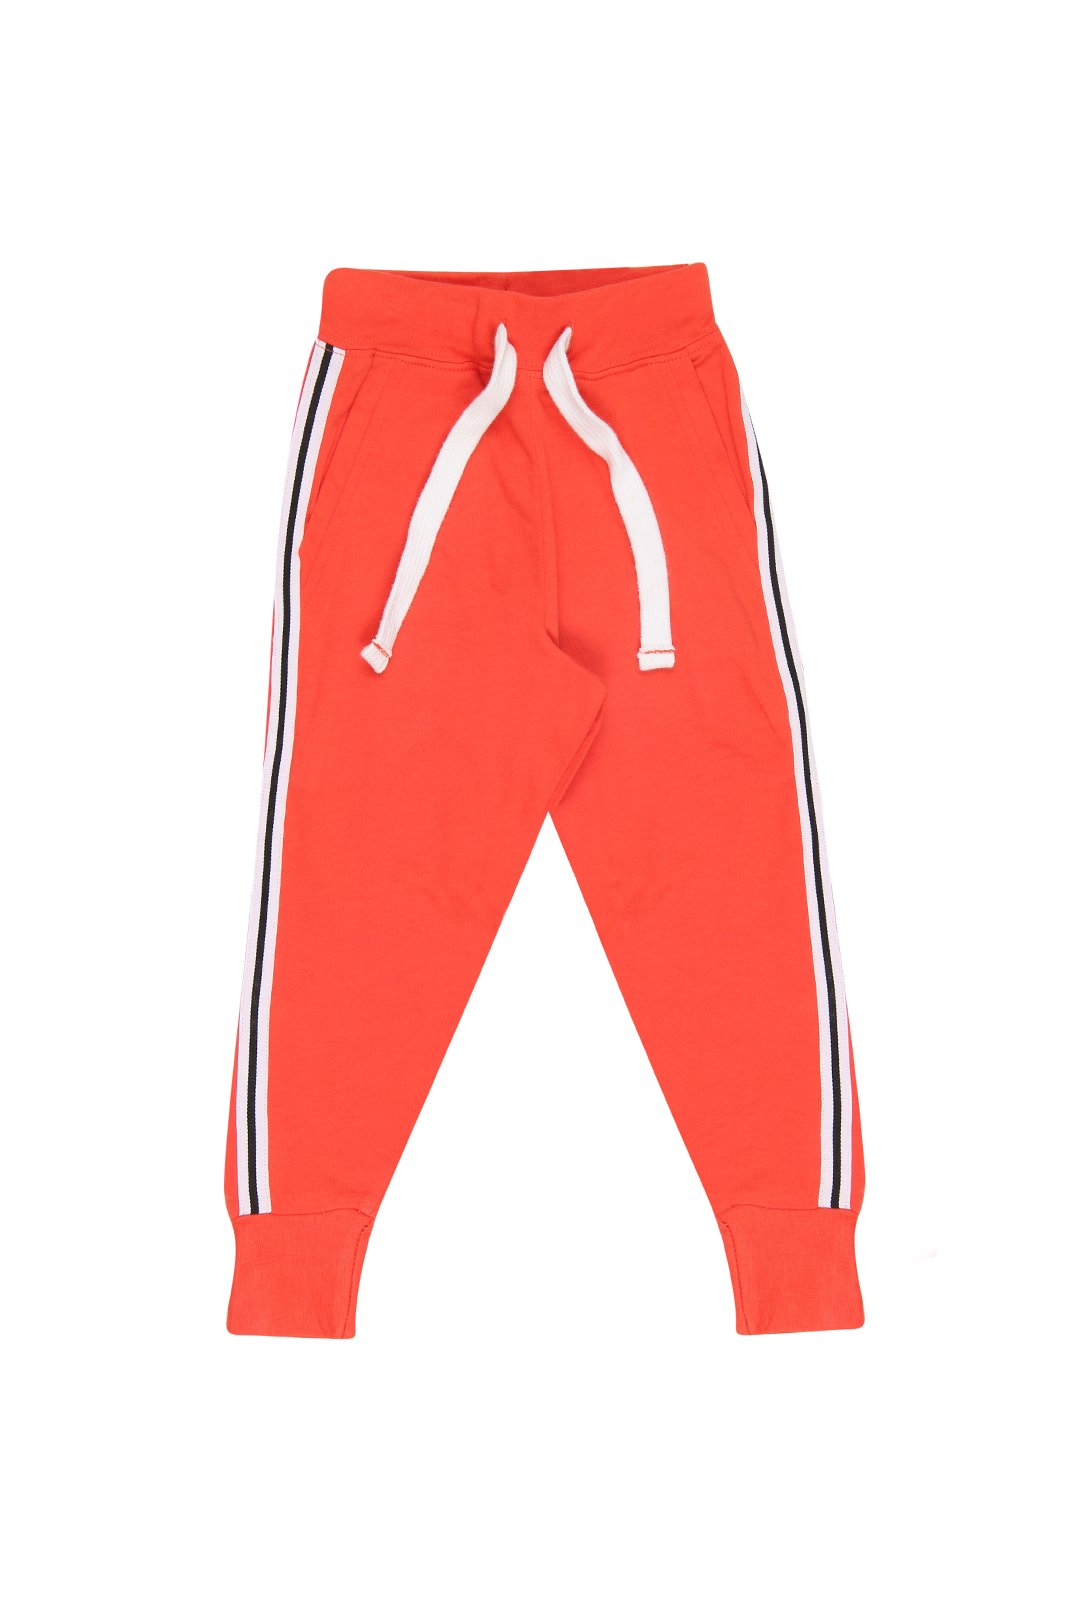 Red Athletic Joggers - Nap Chief